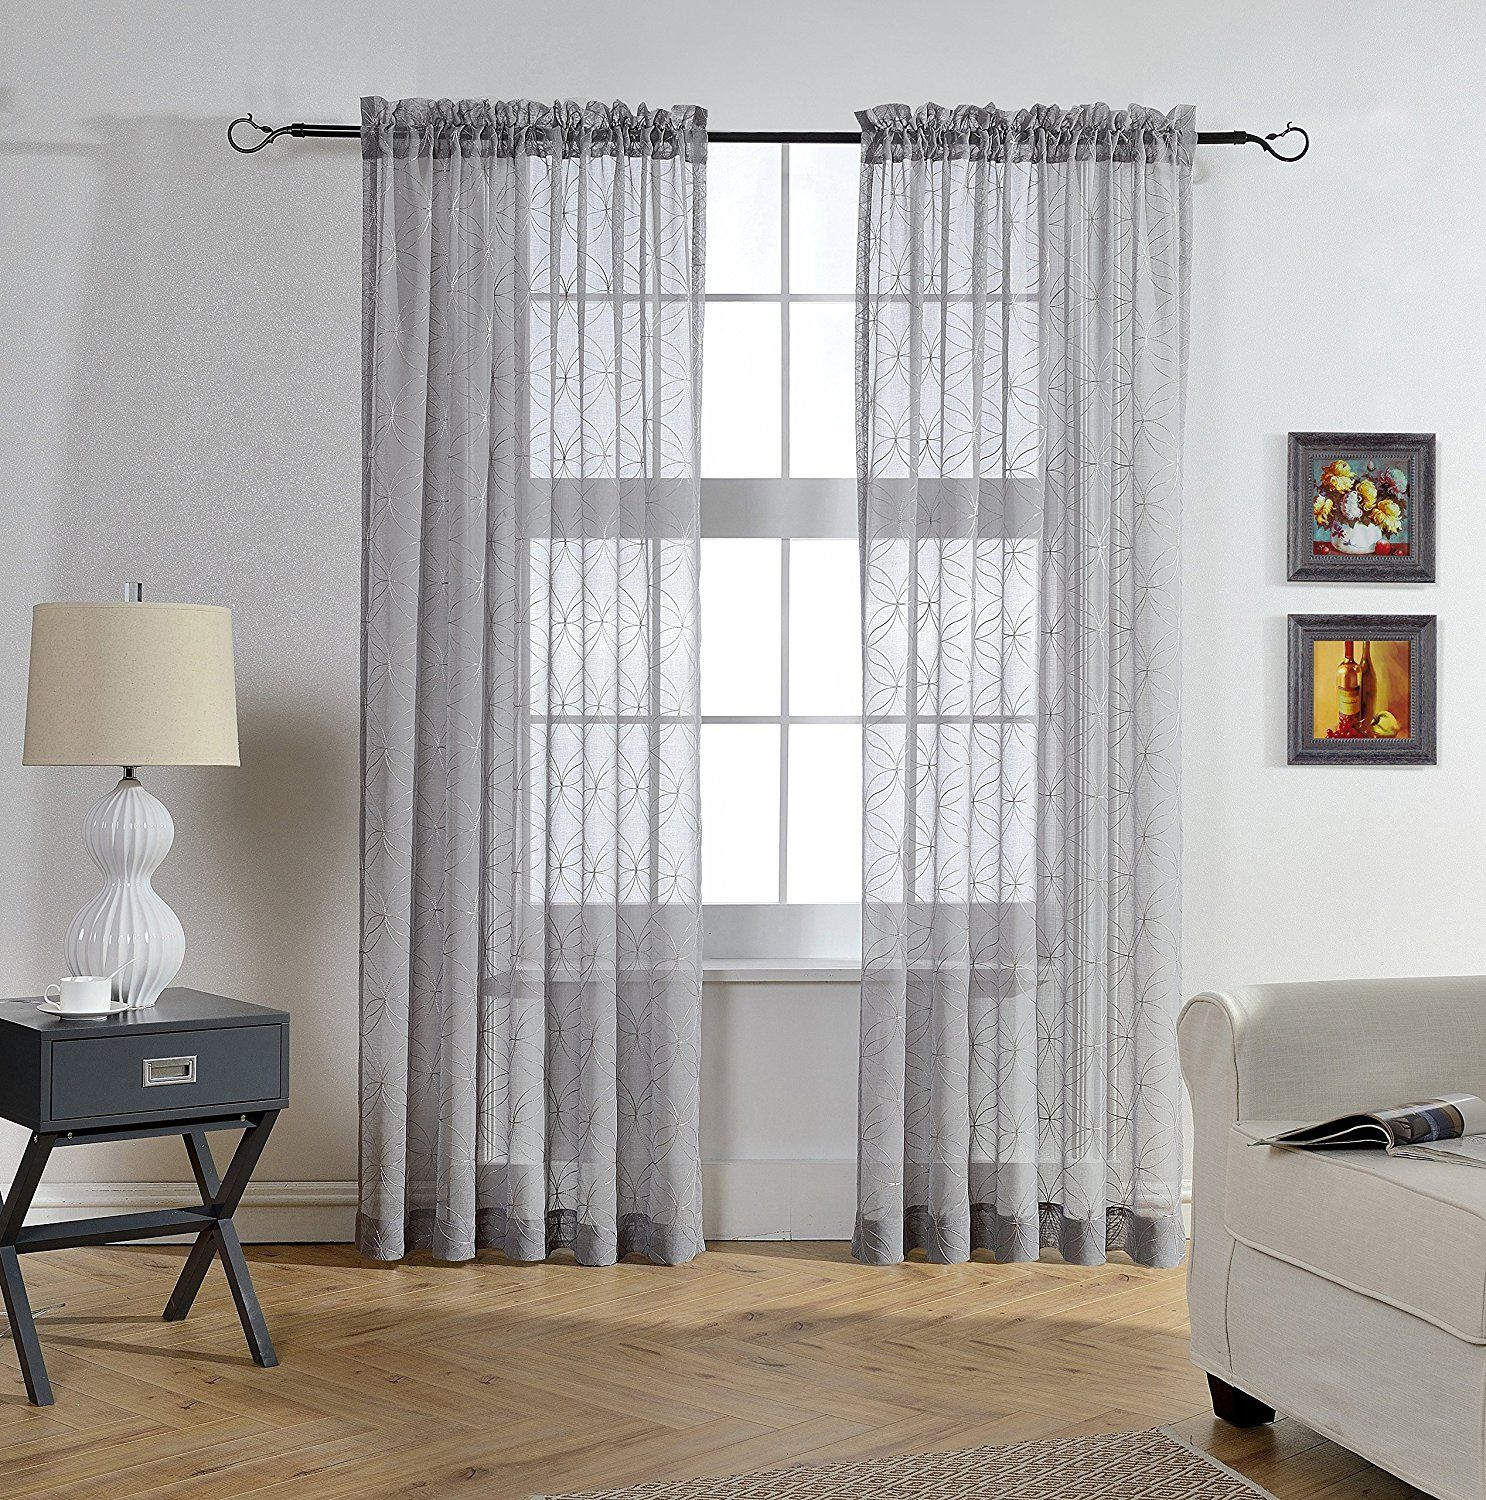 Mysky home rod pocket window embroidery voile embroidered sheer